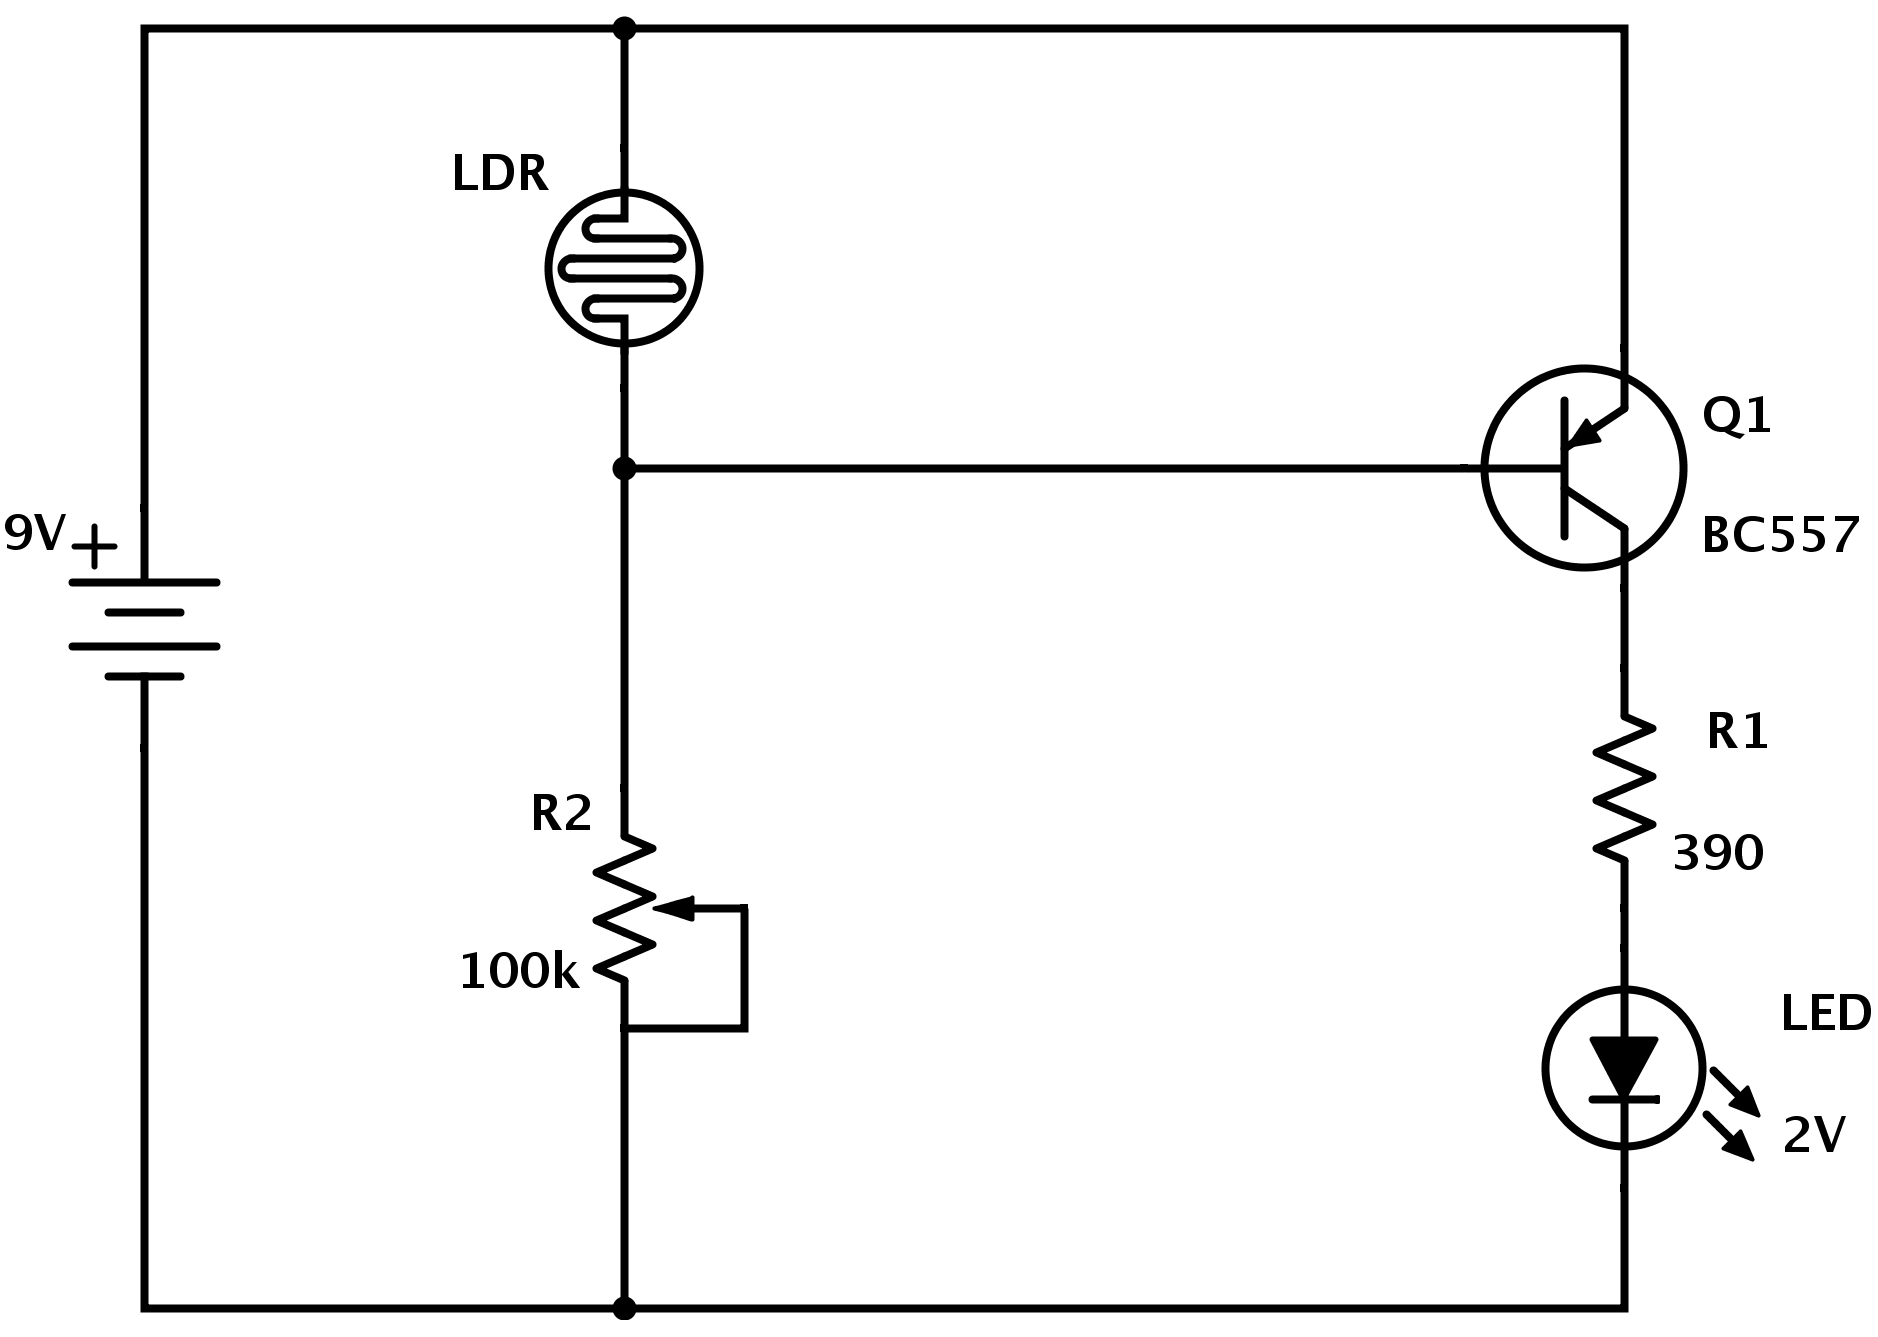 a simple circuit diagram the wiring diagram easy circuit diagram vidim wiring diagram circuit diagram